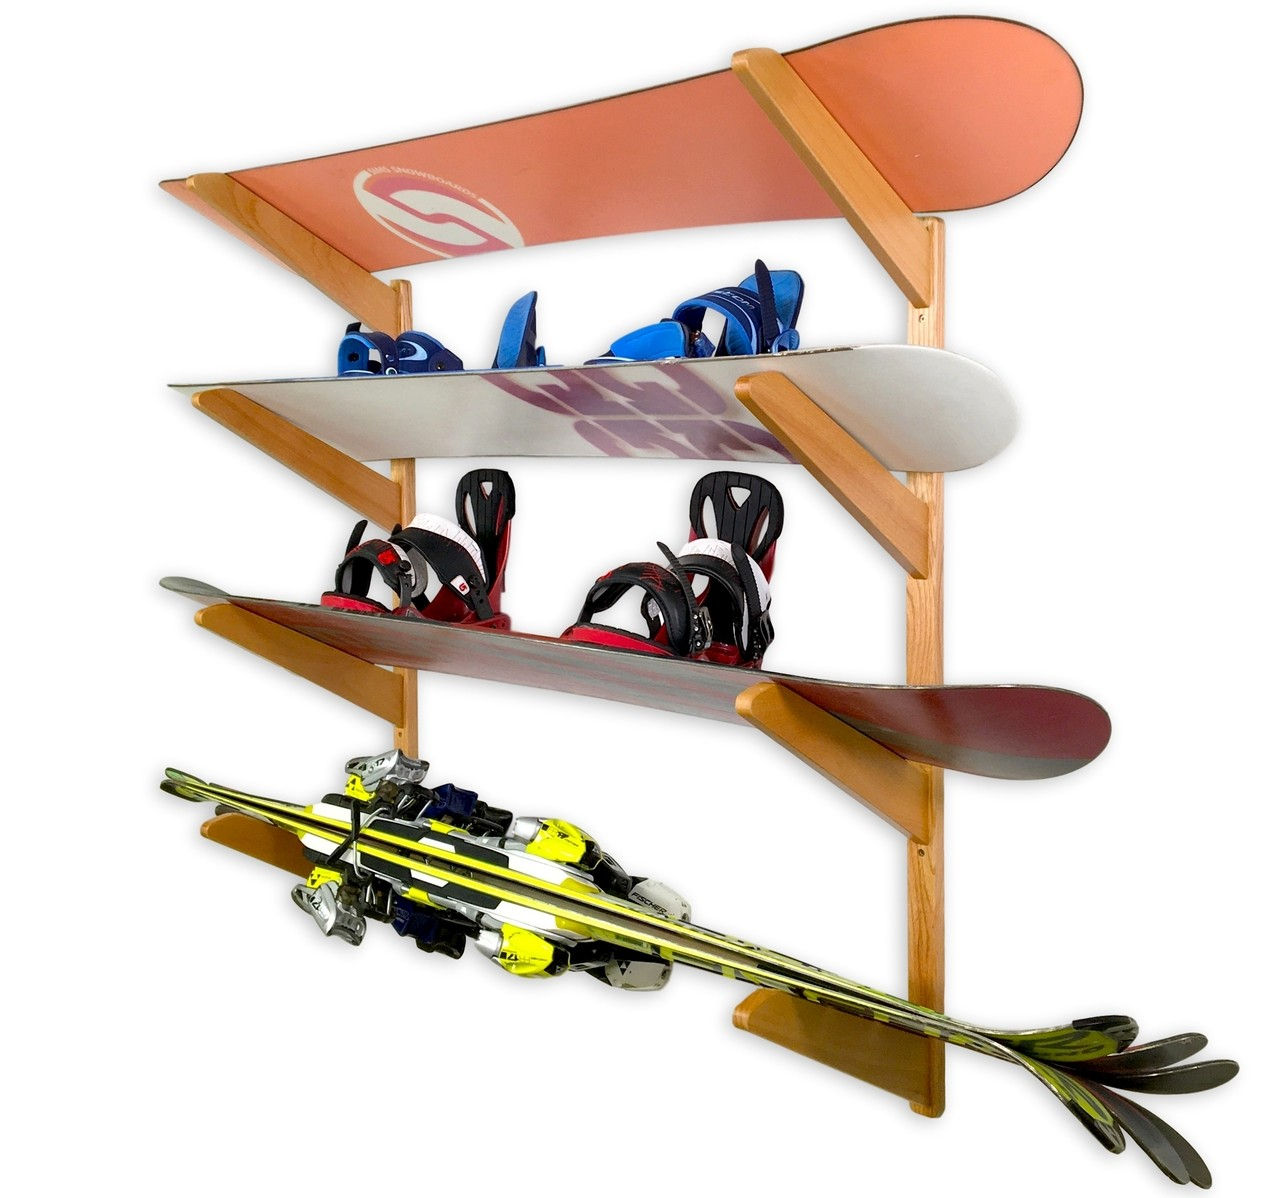 Timber solid snowboard rack holds multi boards